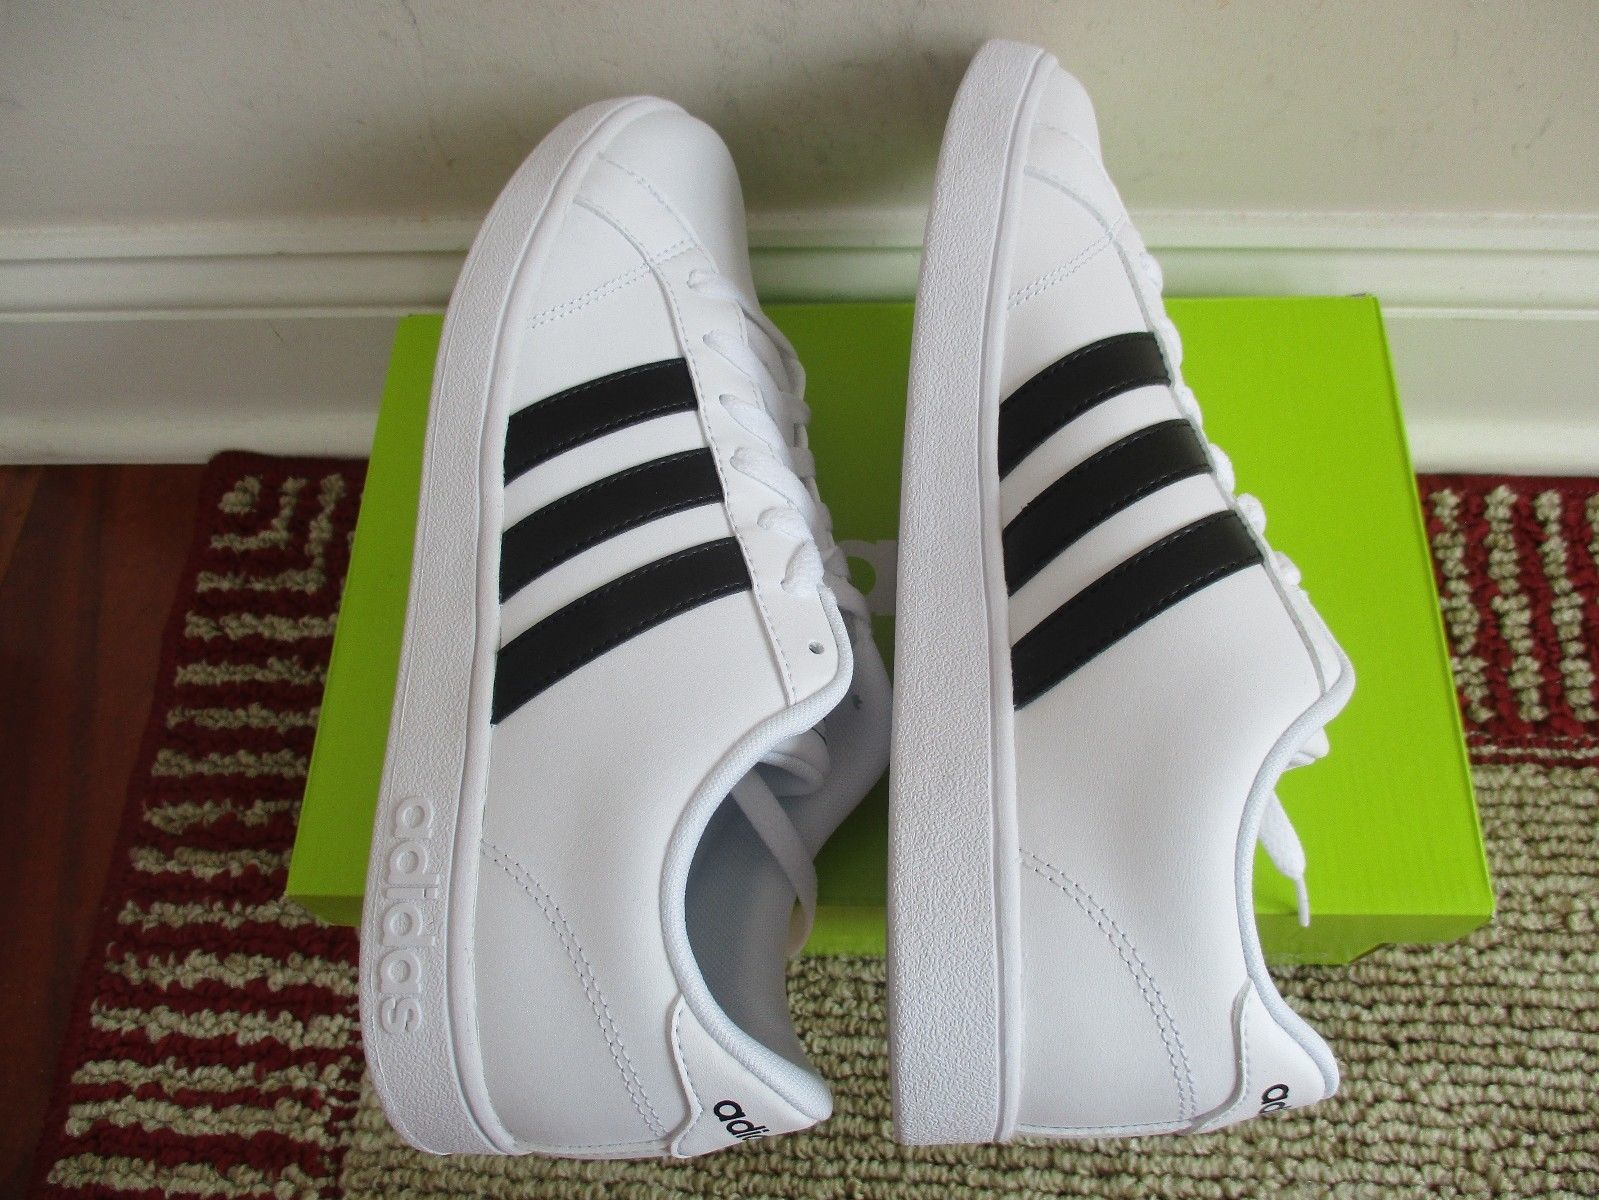 BNIB Adidas NEO Baseline Men's Shoes, and 50 similar items